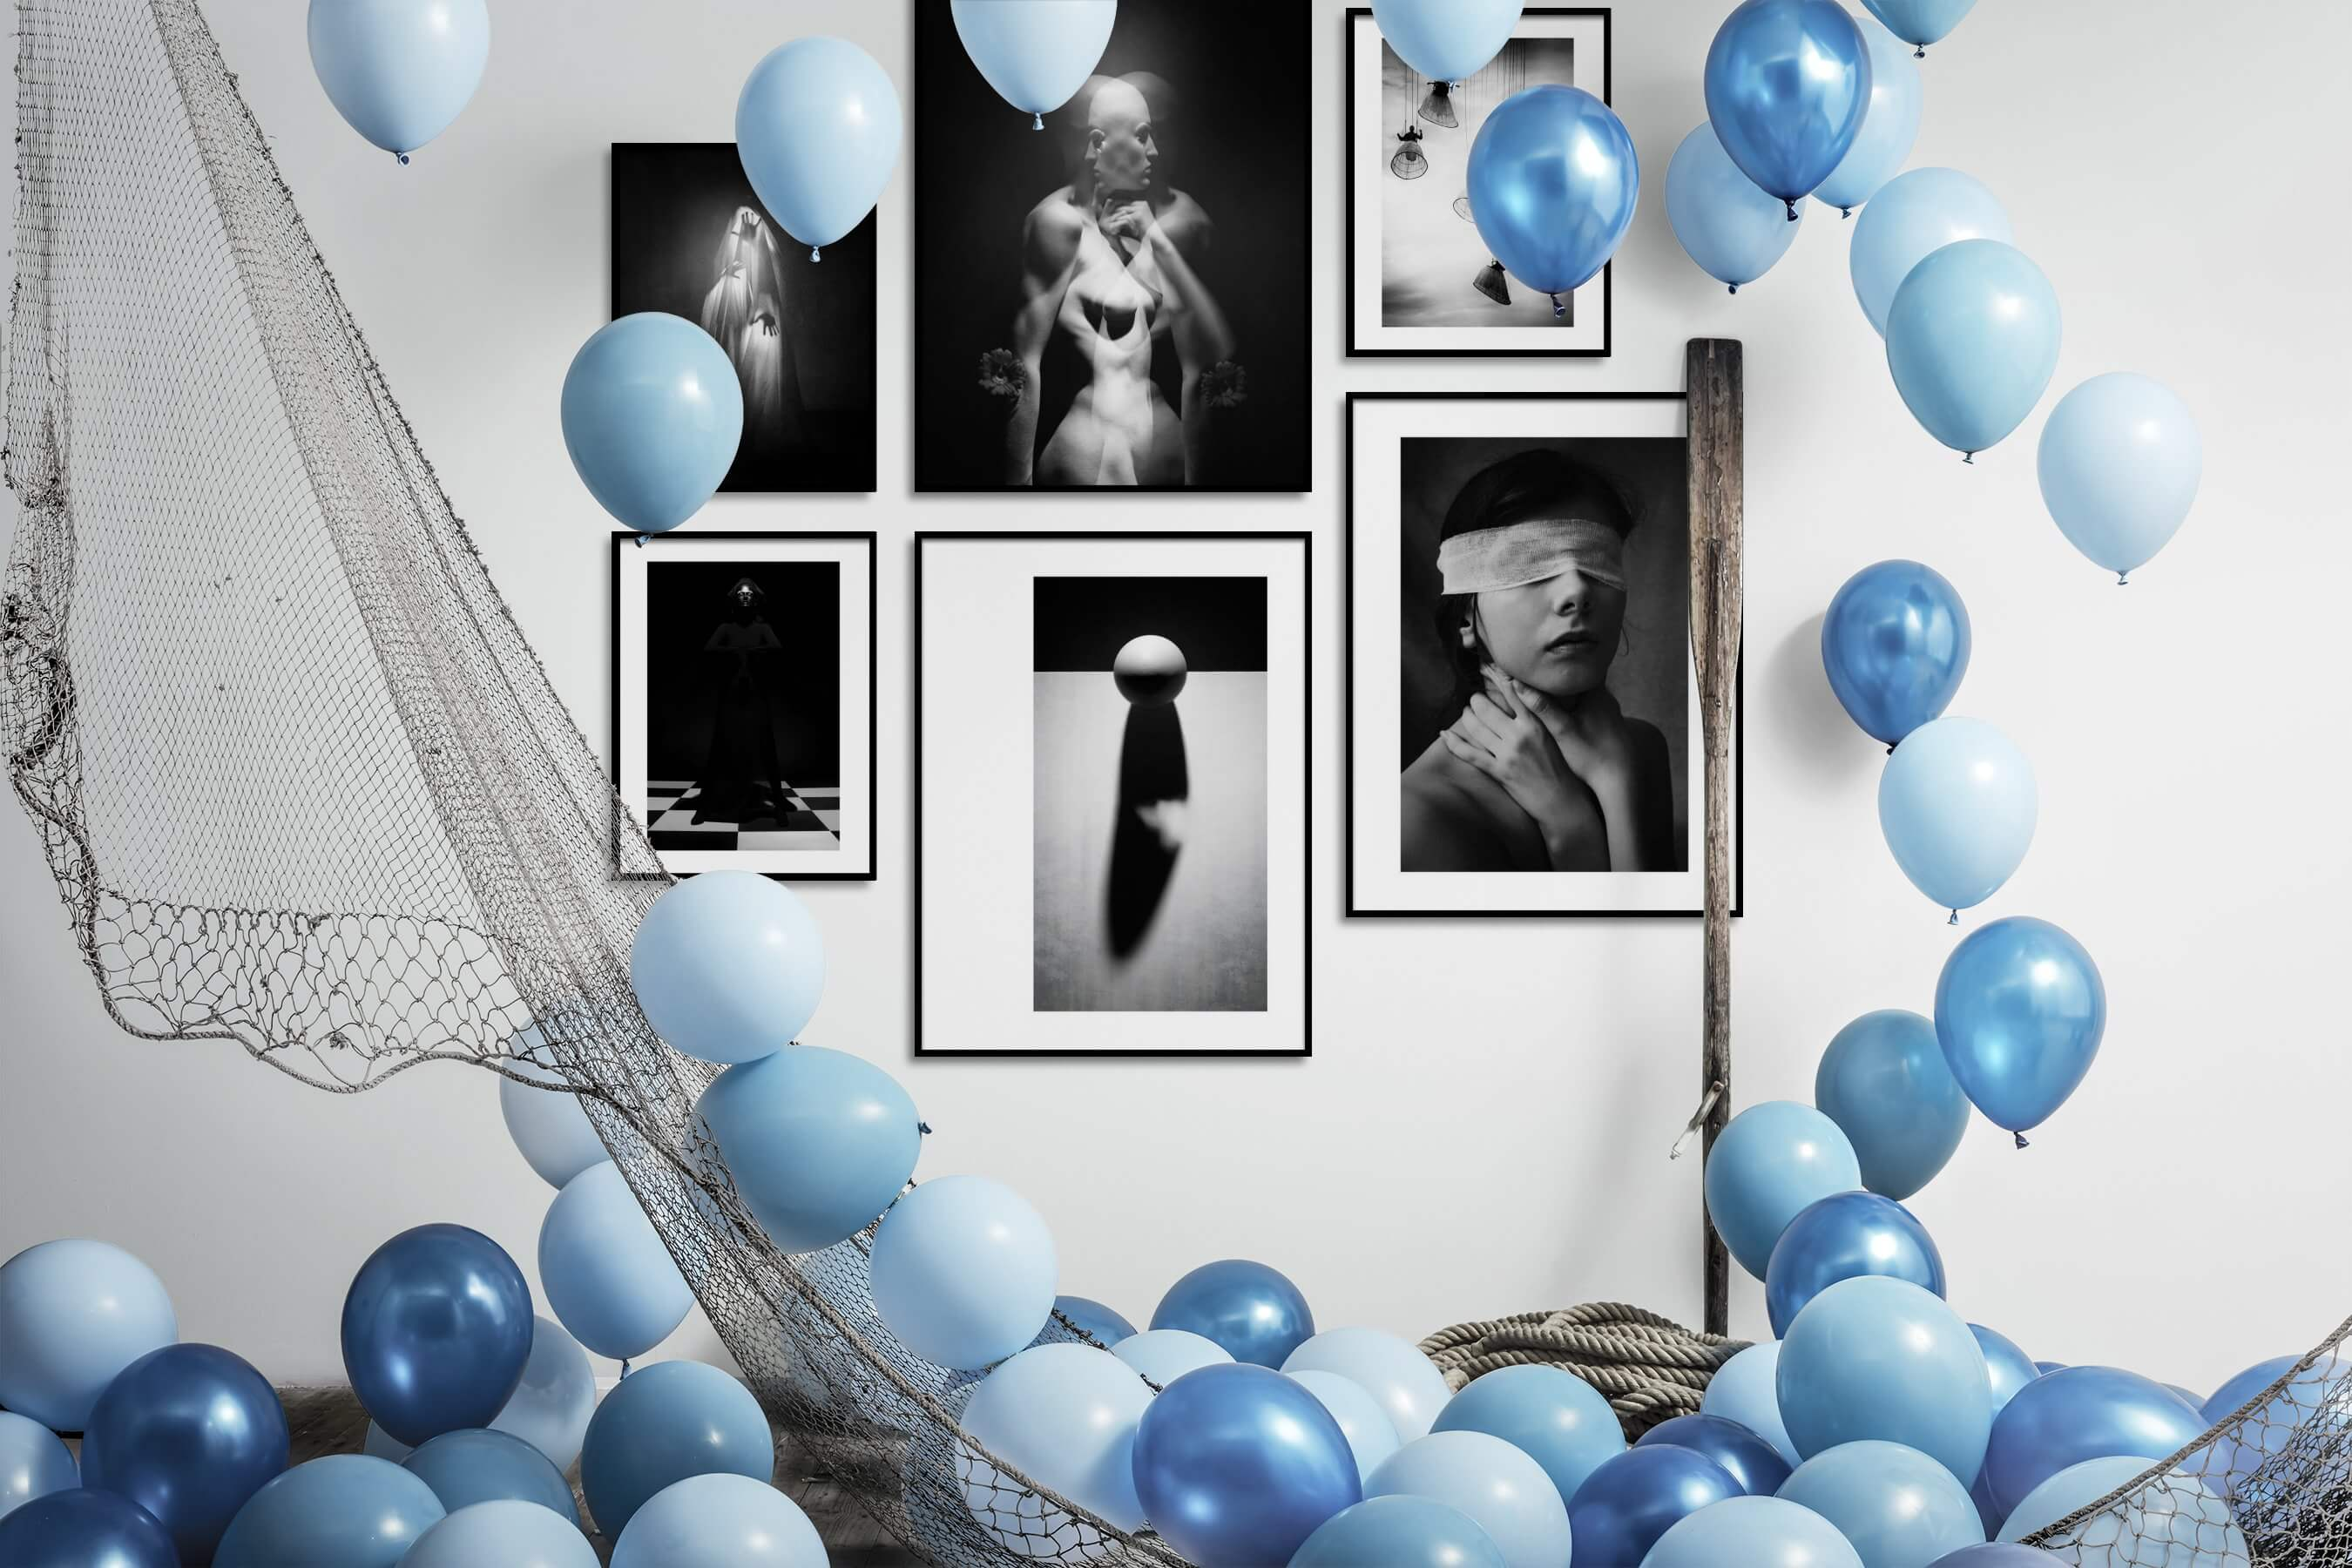 Gallery wall idea with six framed pictures arranged on a wall depicting Artsy, Black & White, Dark Tones, For the Minimalist, Bold, and For the Moderate